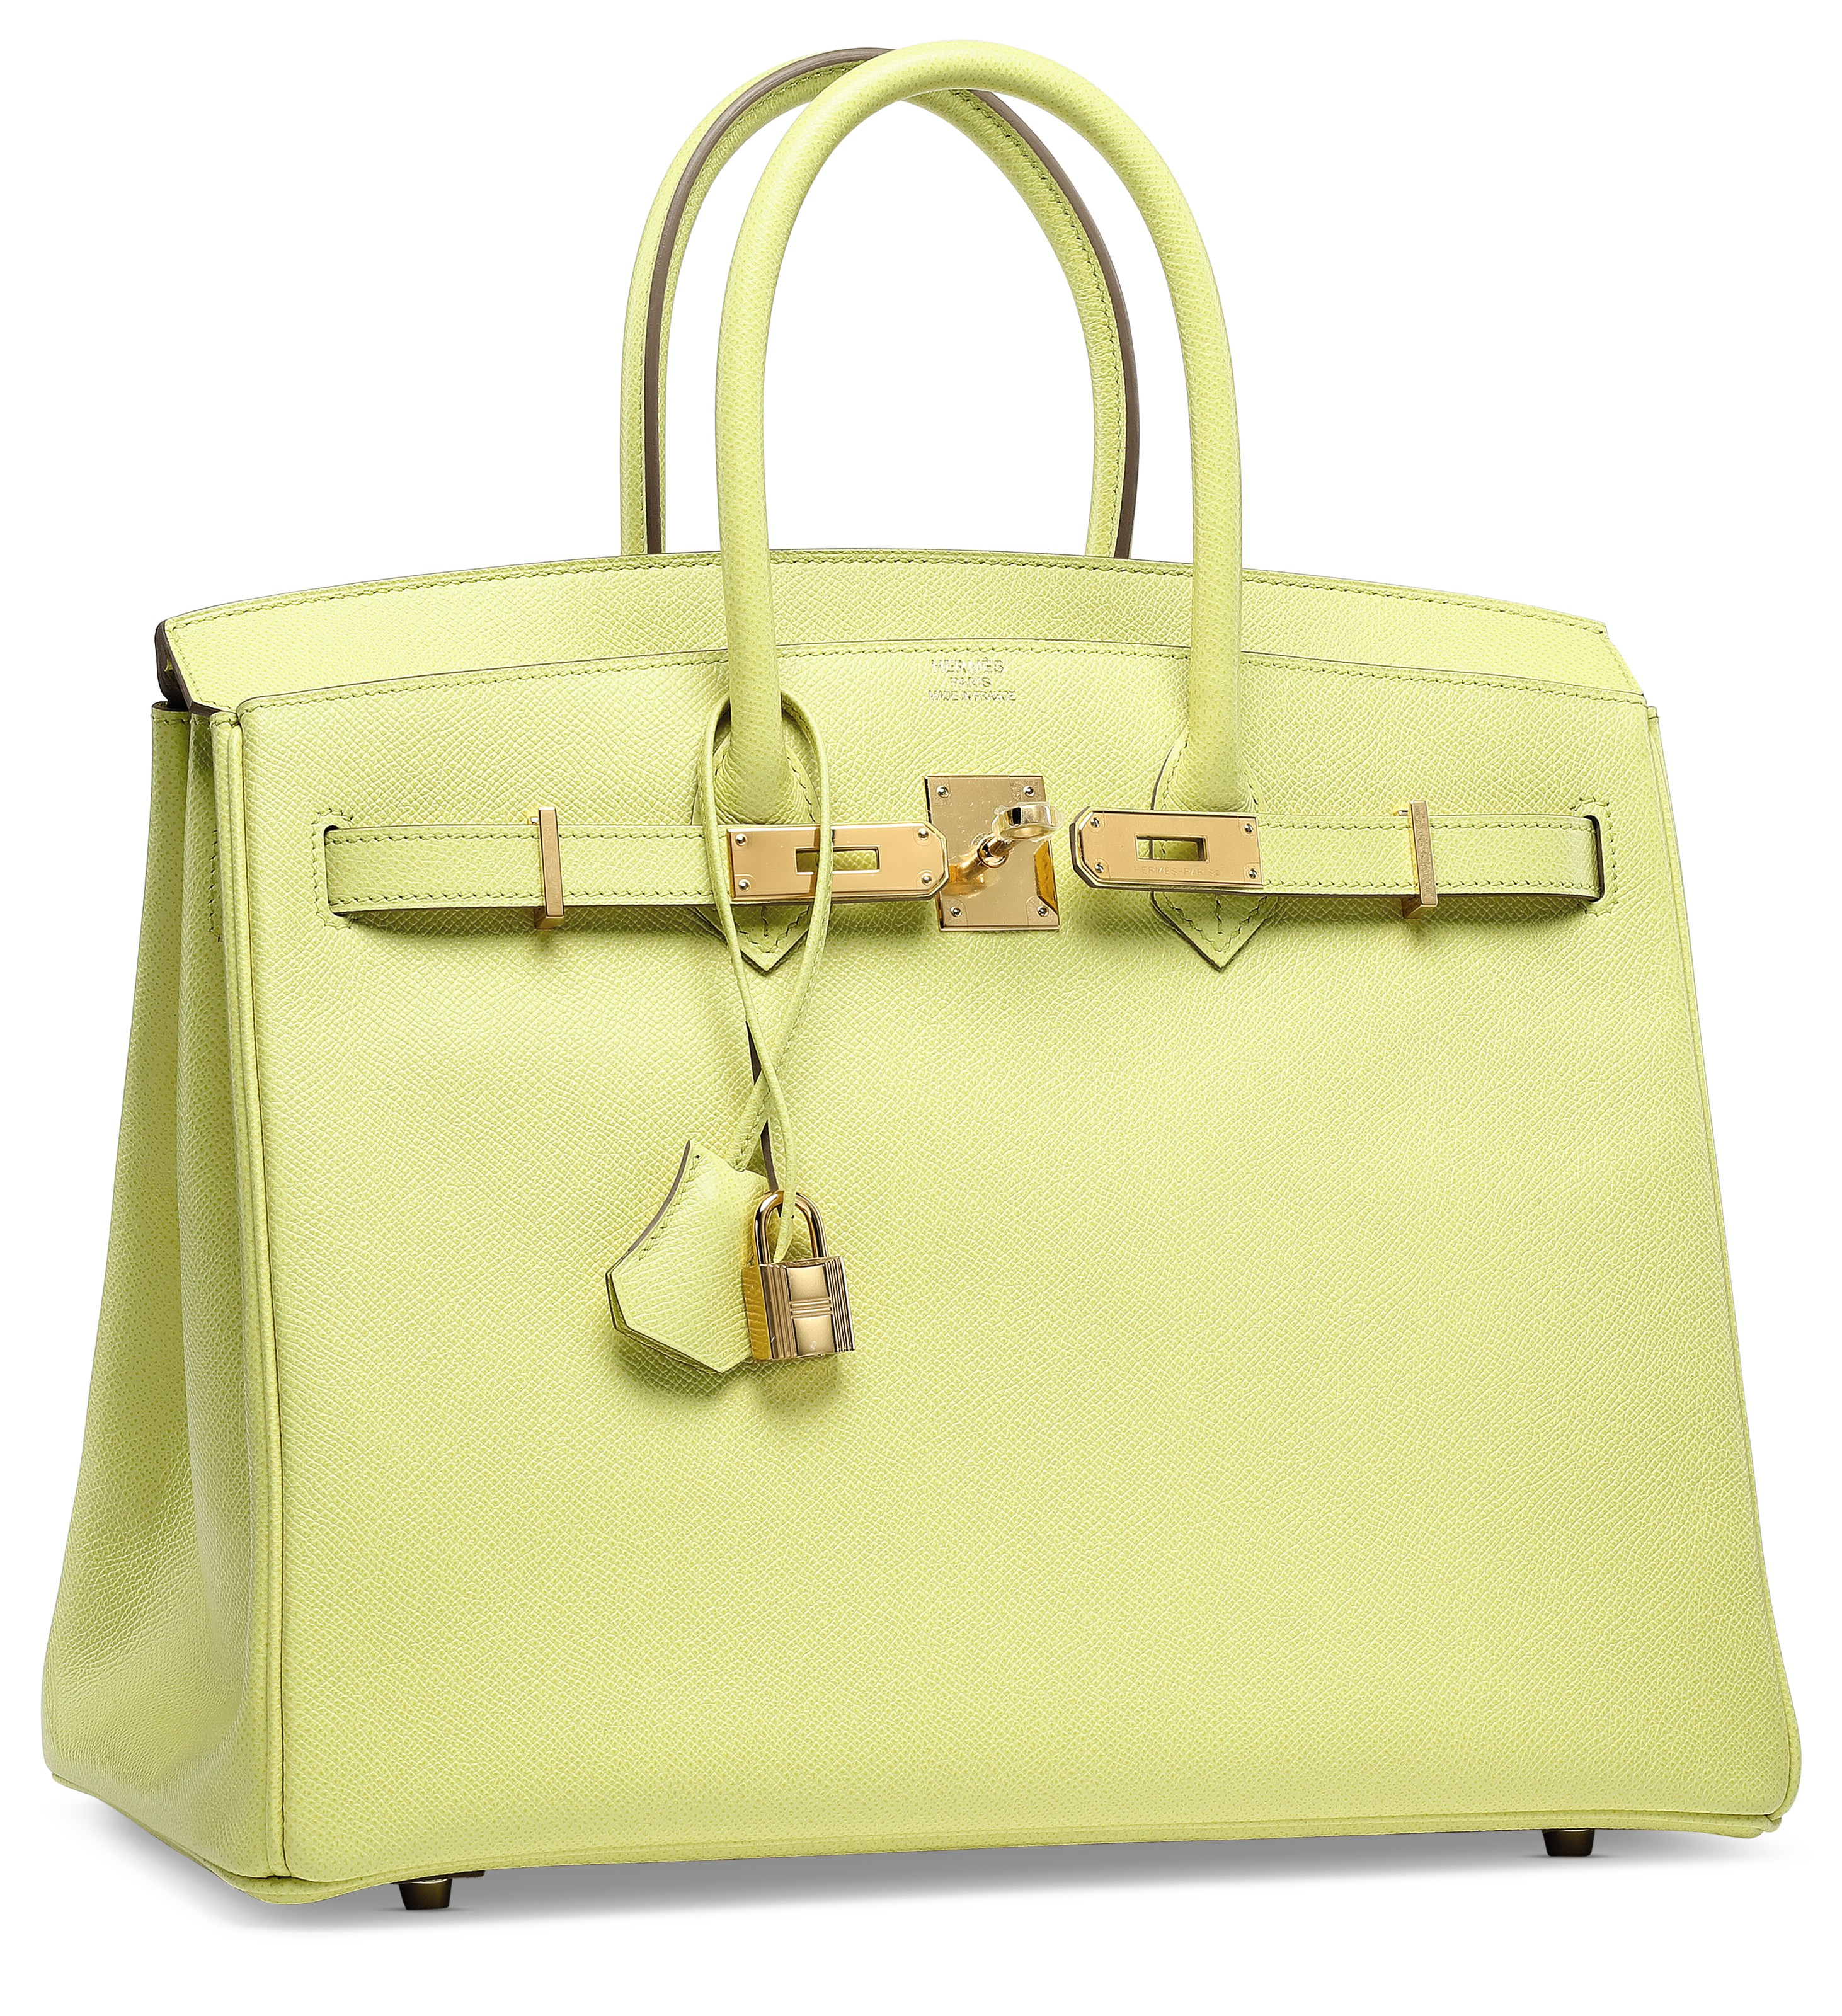 A LIME EPSOM LEATHER BIRKIN 35 WITH GOLD HARDWARE